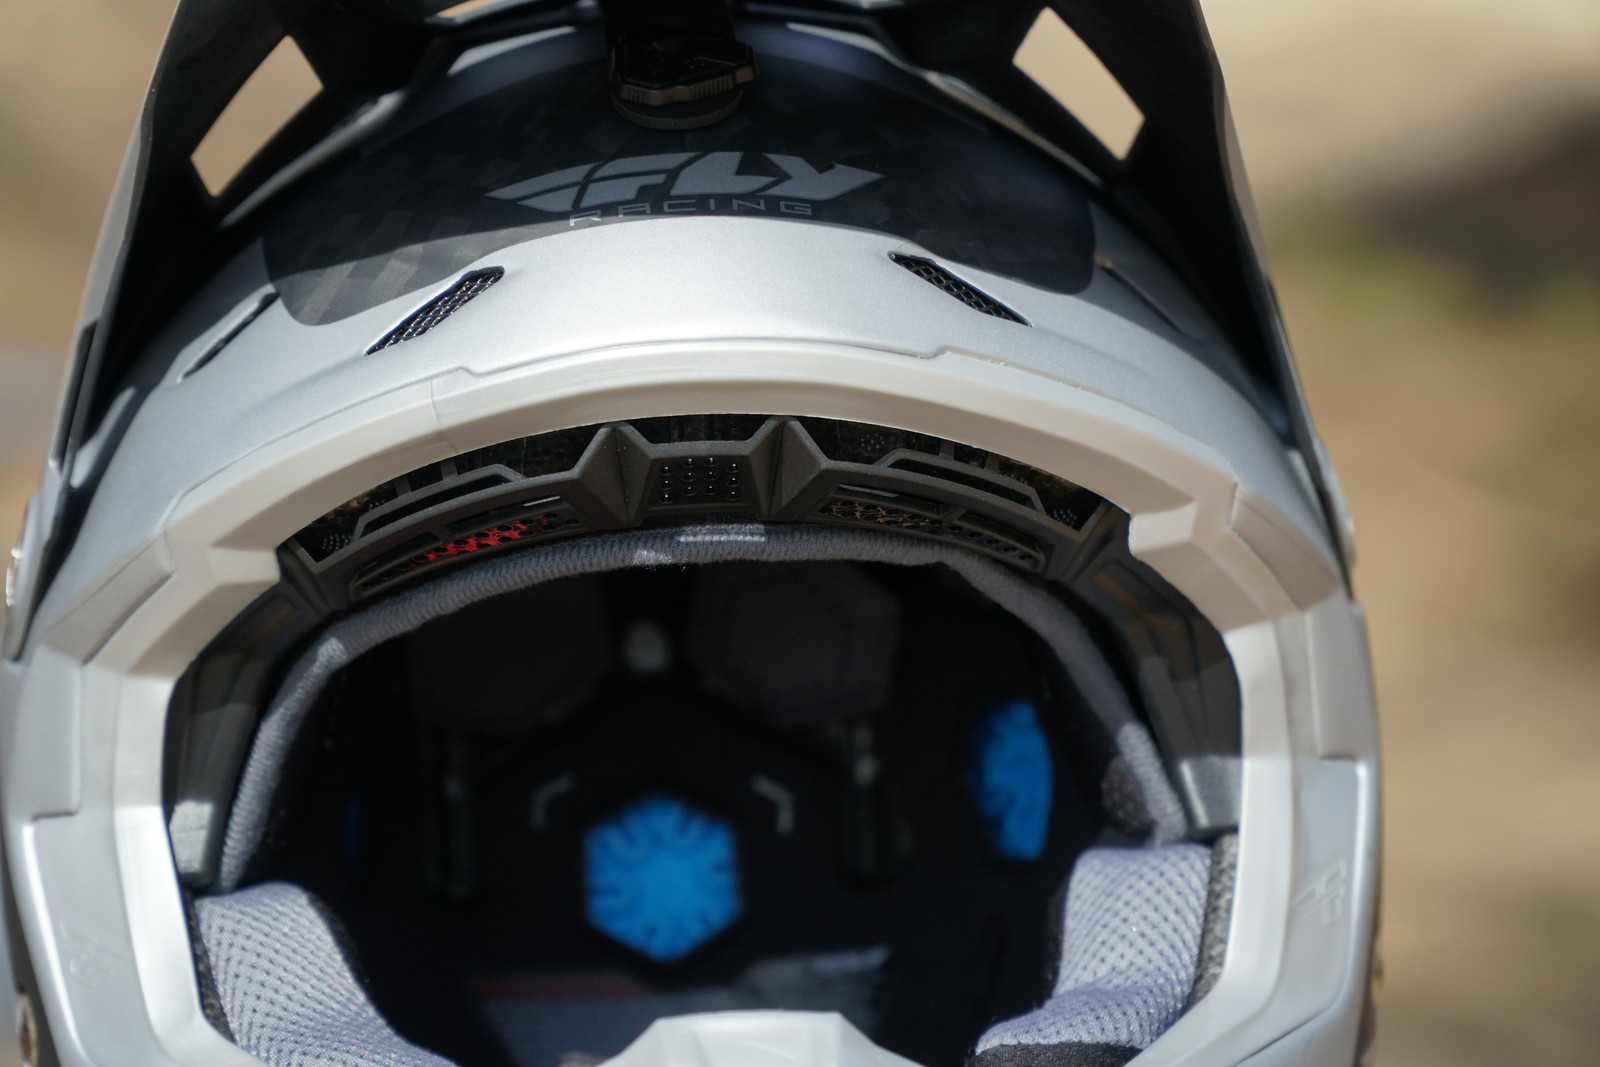 Fly put more EPS in the forehead area, around the crown, and at the back of the helmet.